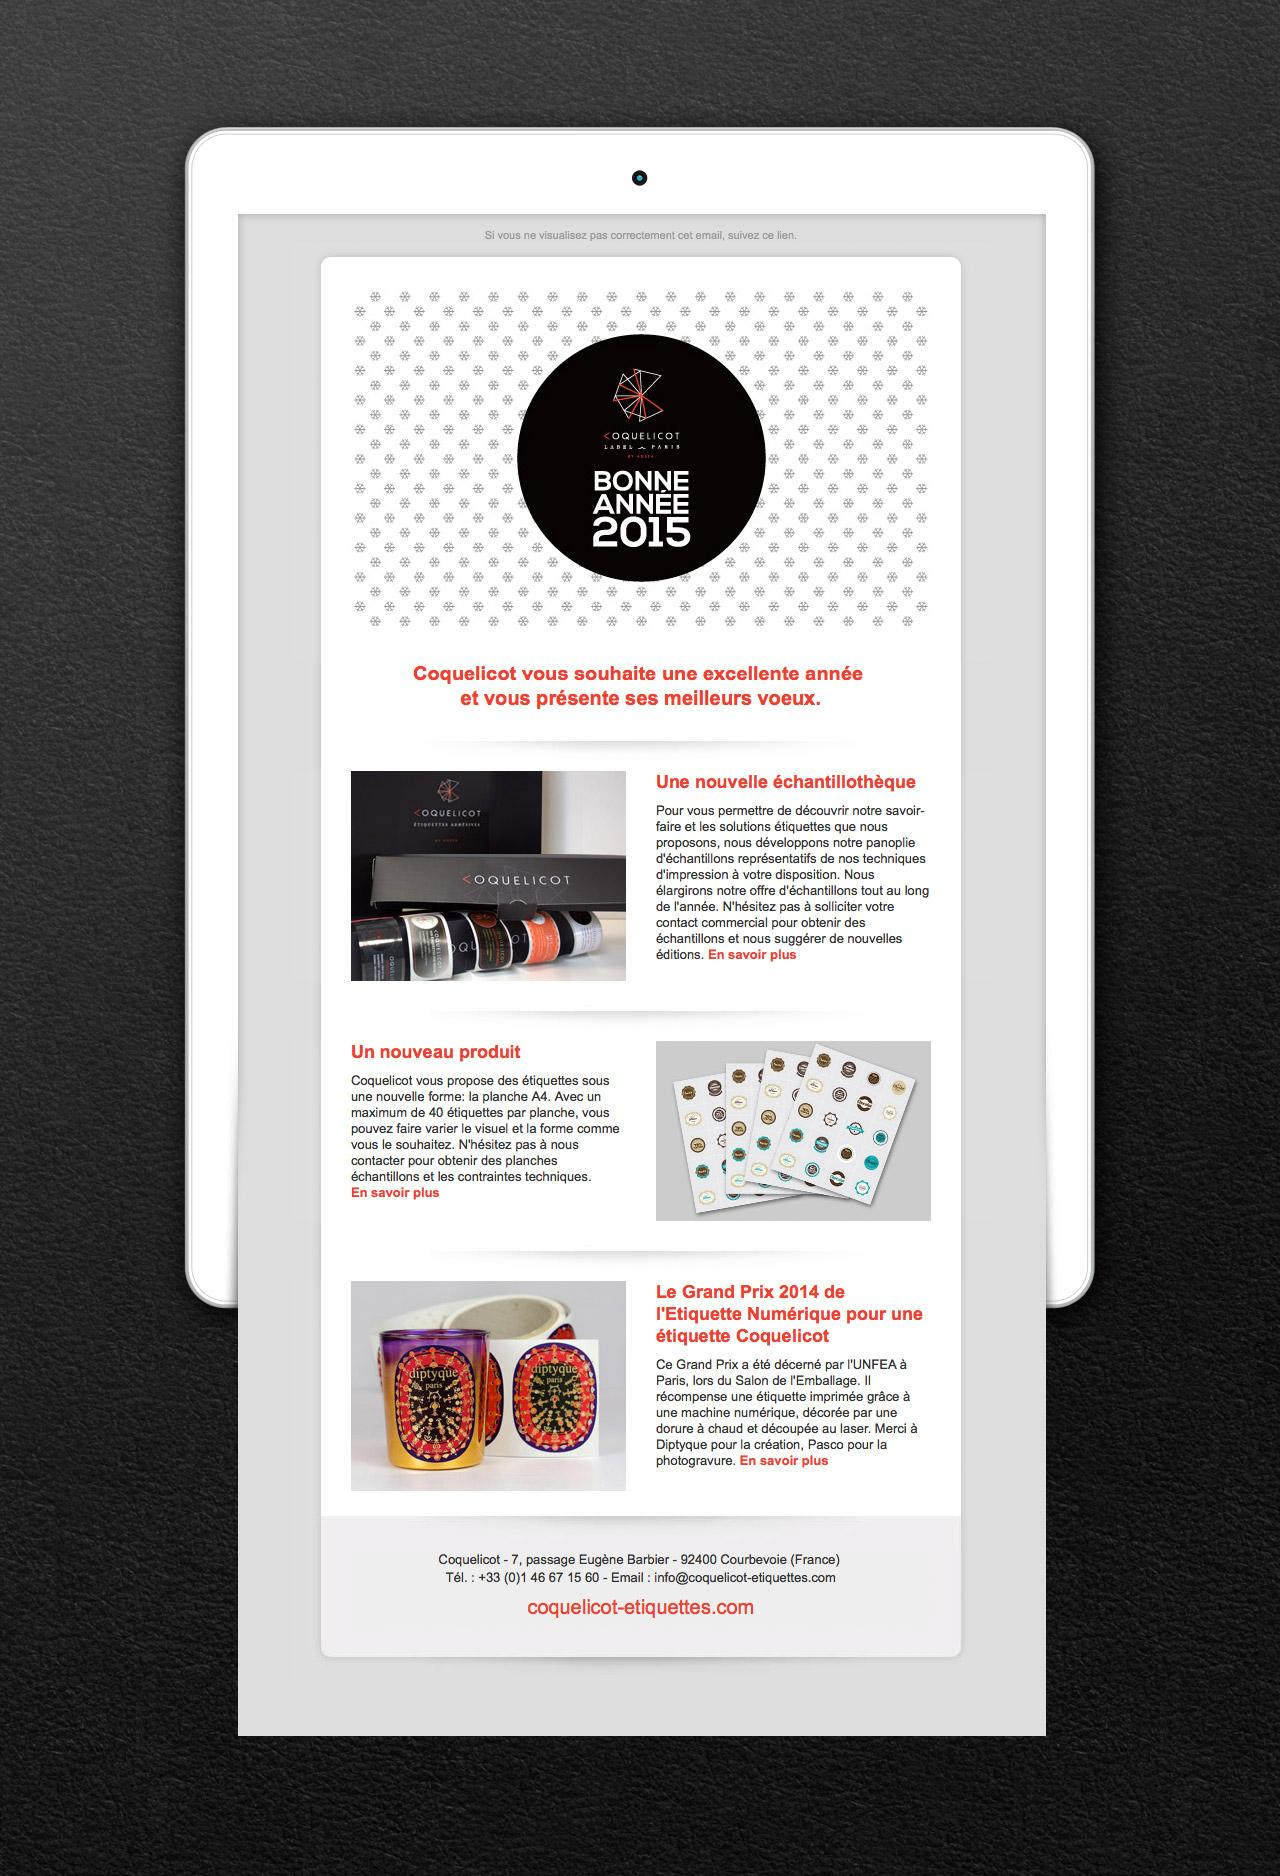 coquelicot-newsletter-mailing-1-design-creation-communication-caconcept-alexis-cretin-graphiste